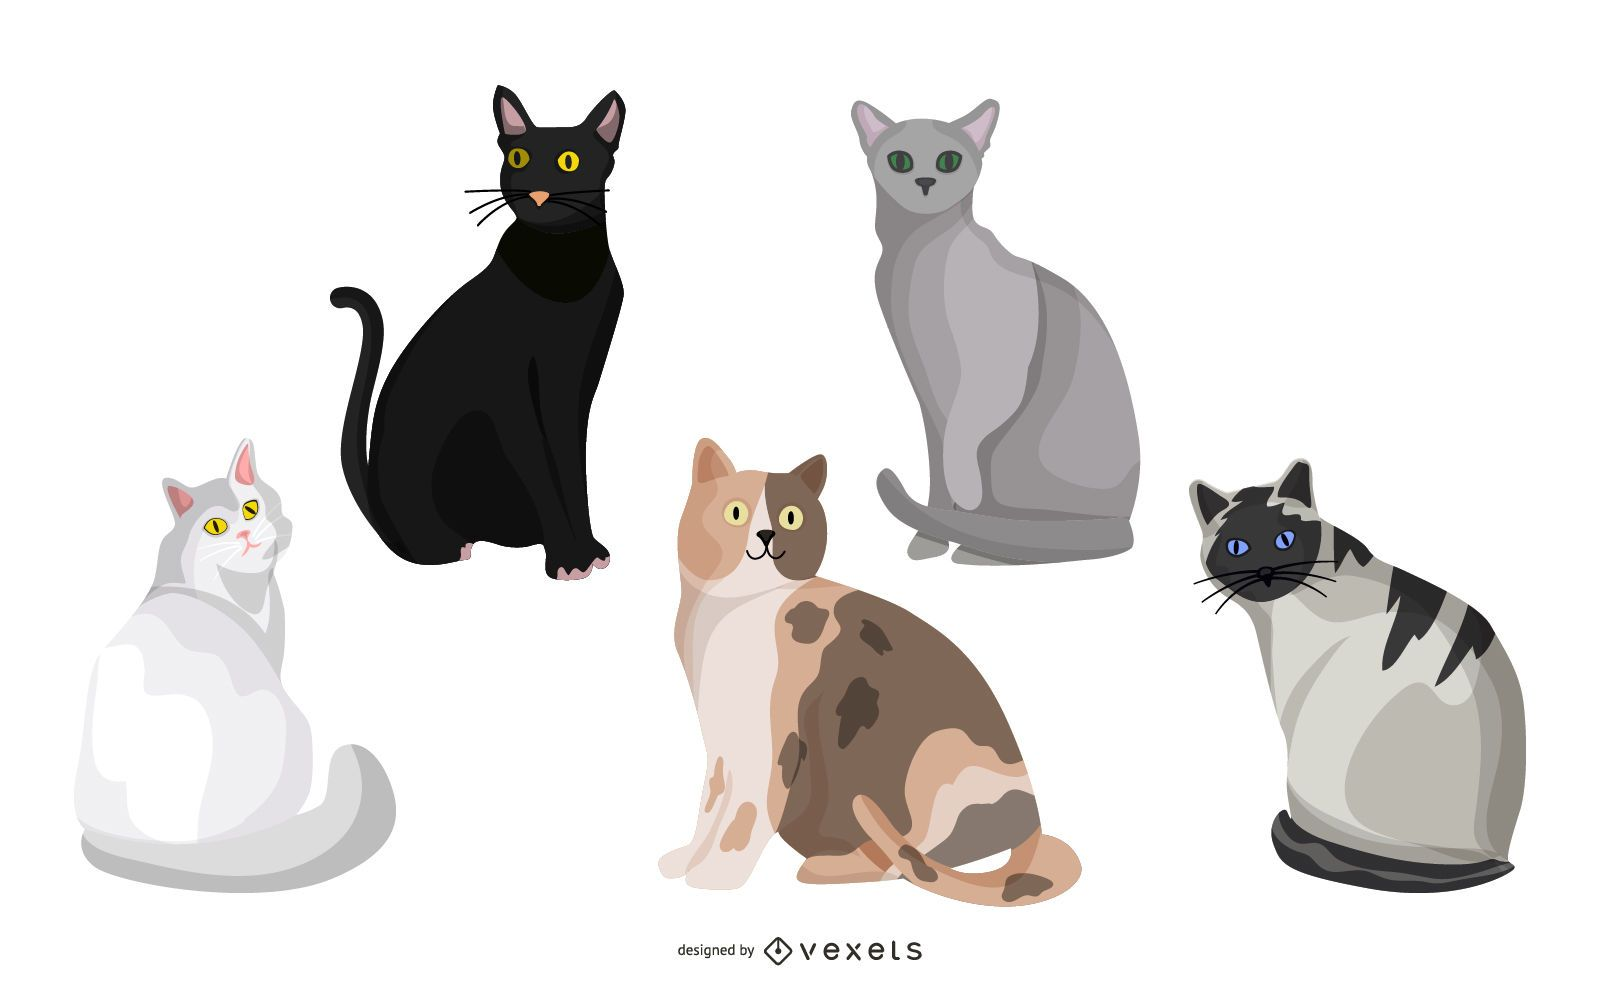 Cats sticker collection